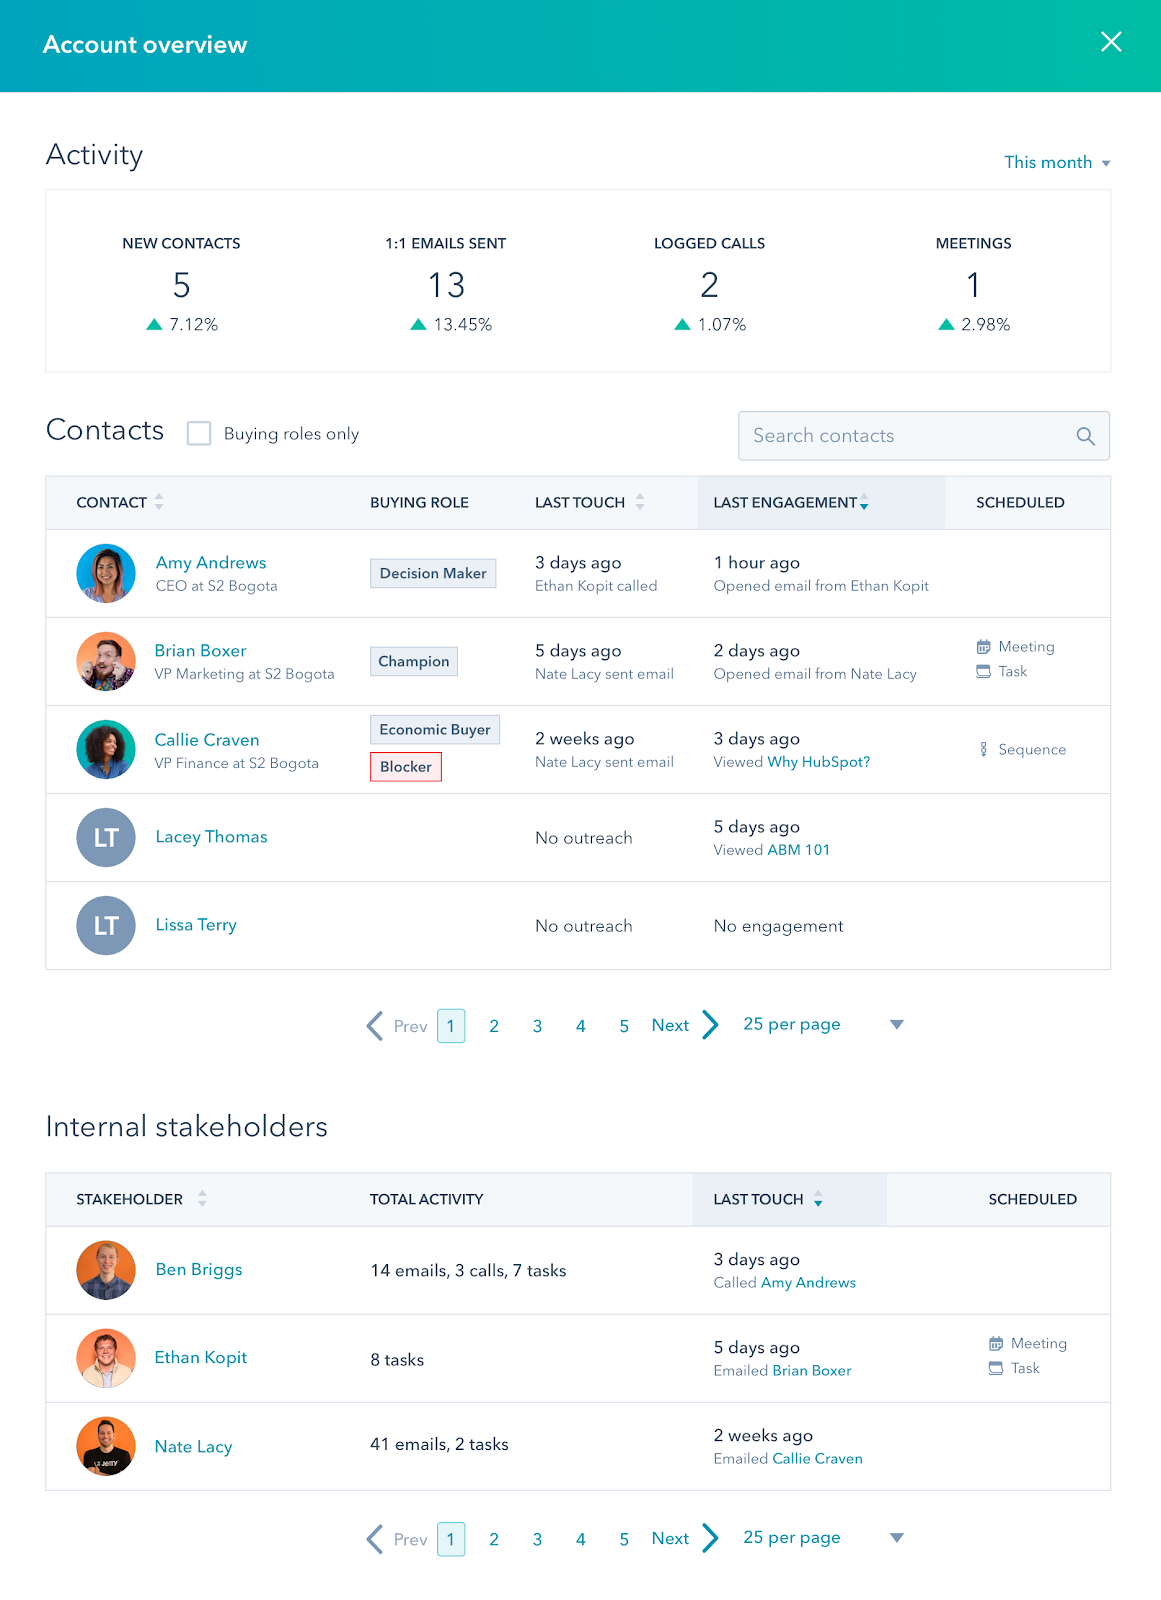 Screenshot of the Account overview page with metrics and information about buying role, last touch, last engagement, and any scheduled tasks.